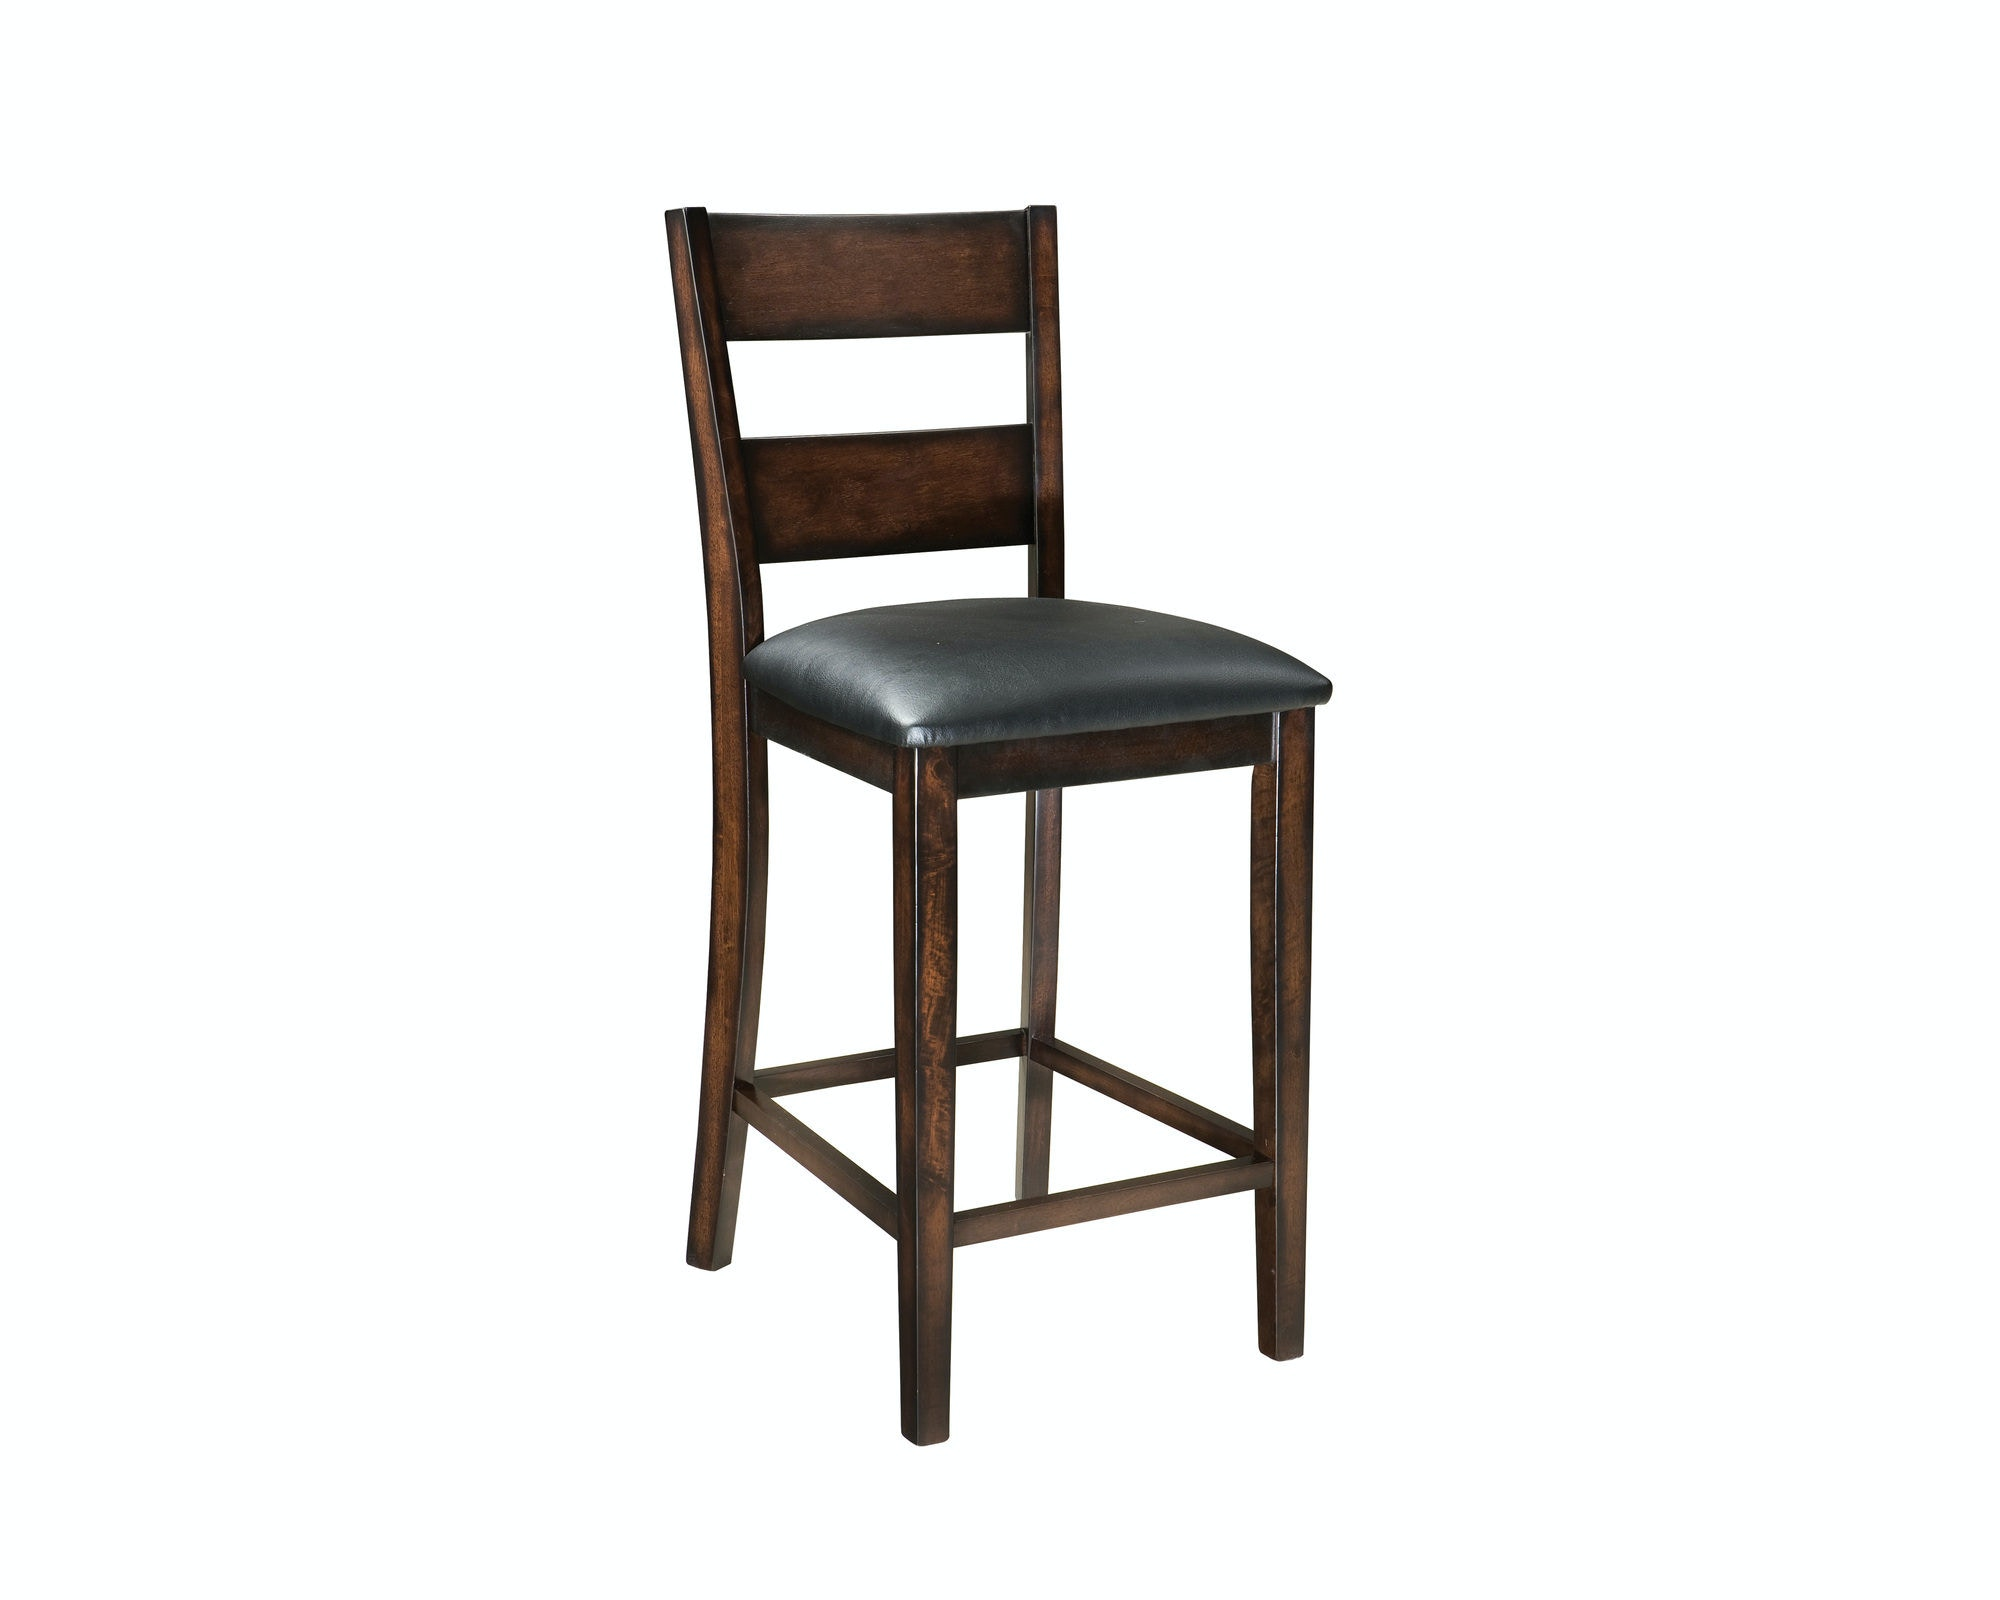 10034. 24 Inches Seat Height Stool